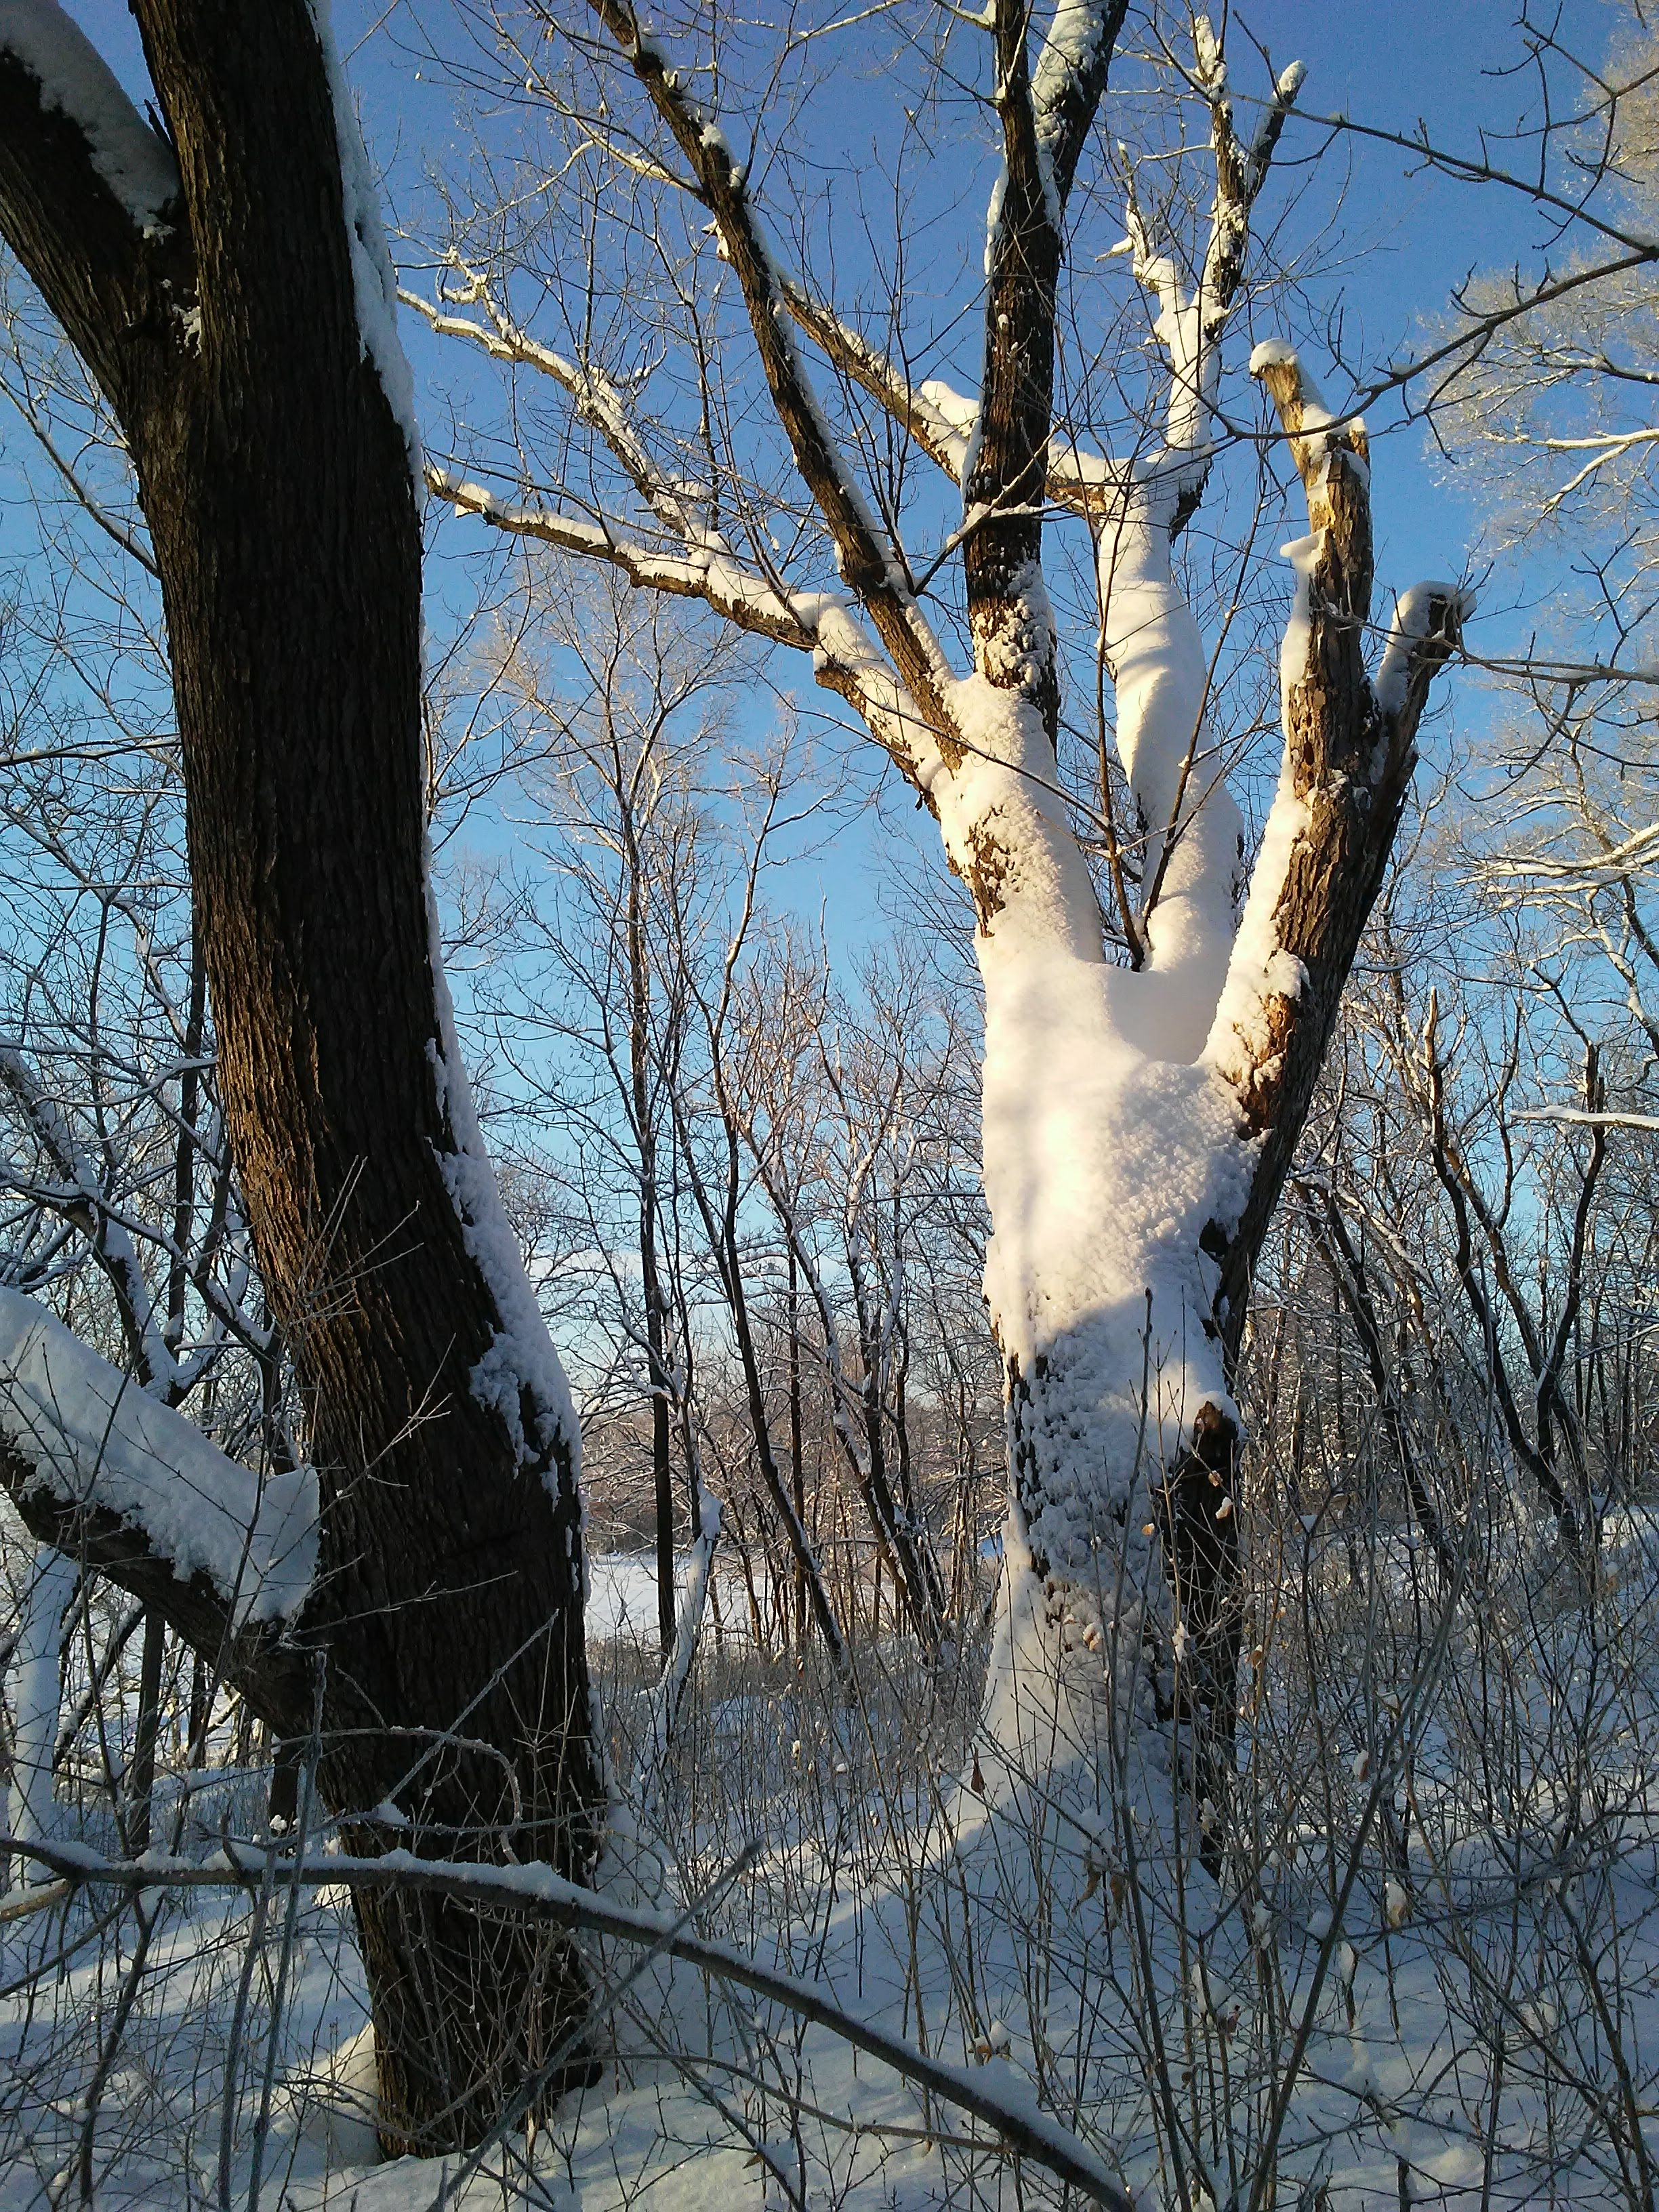 two trees: one snow covered and in sunlight. the other is plain bark and in shadow. contrast